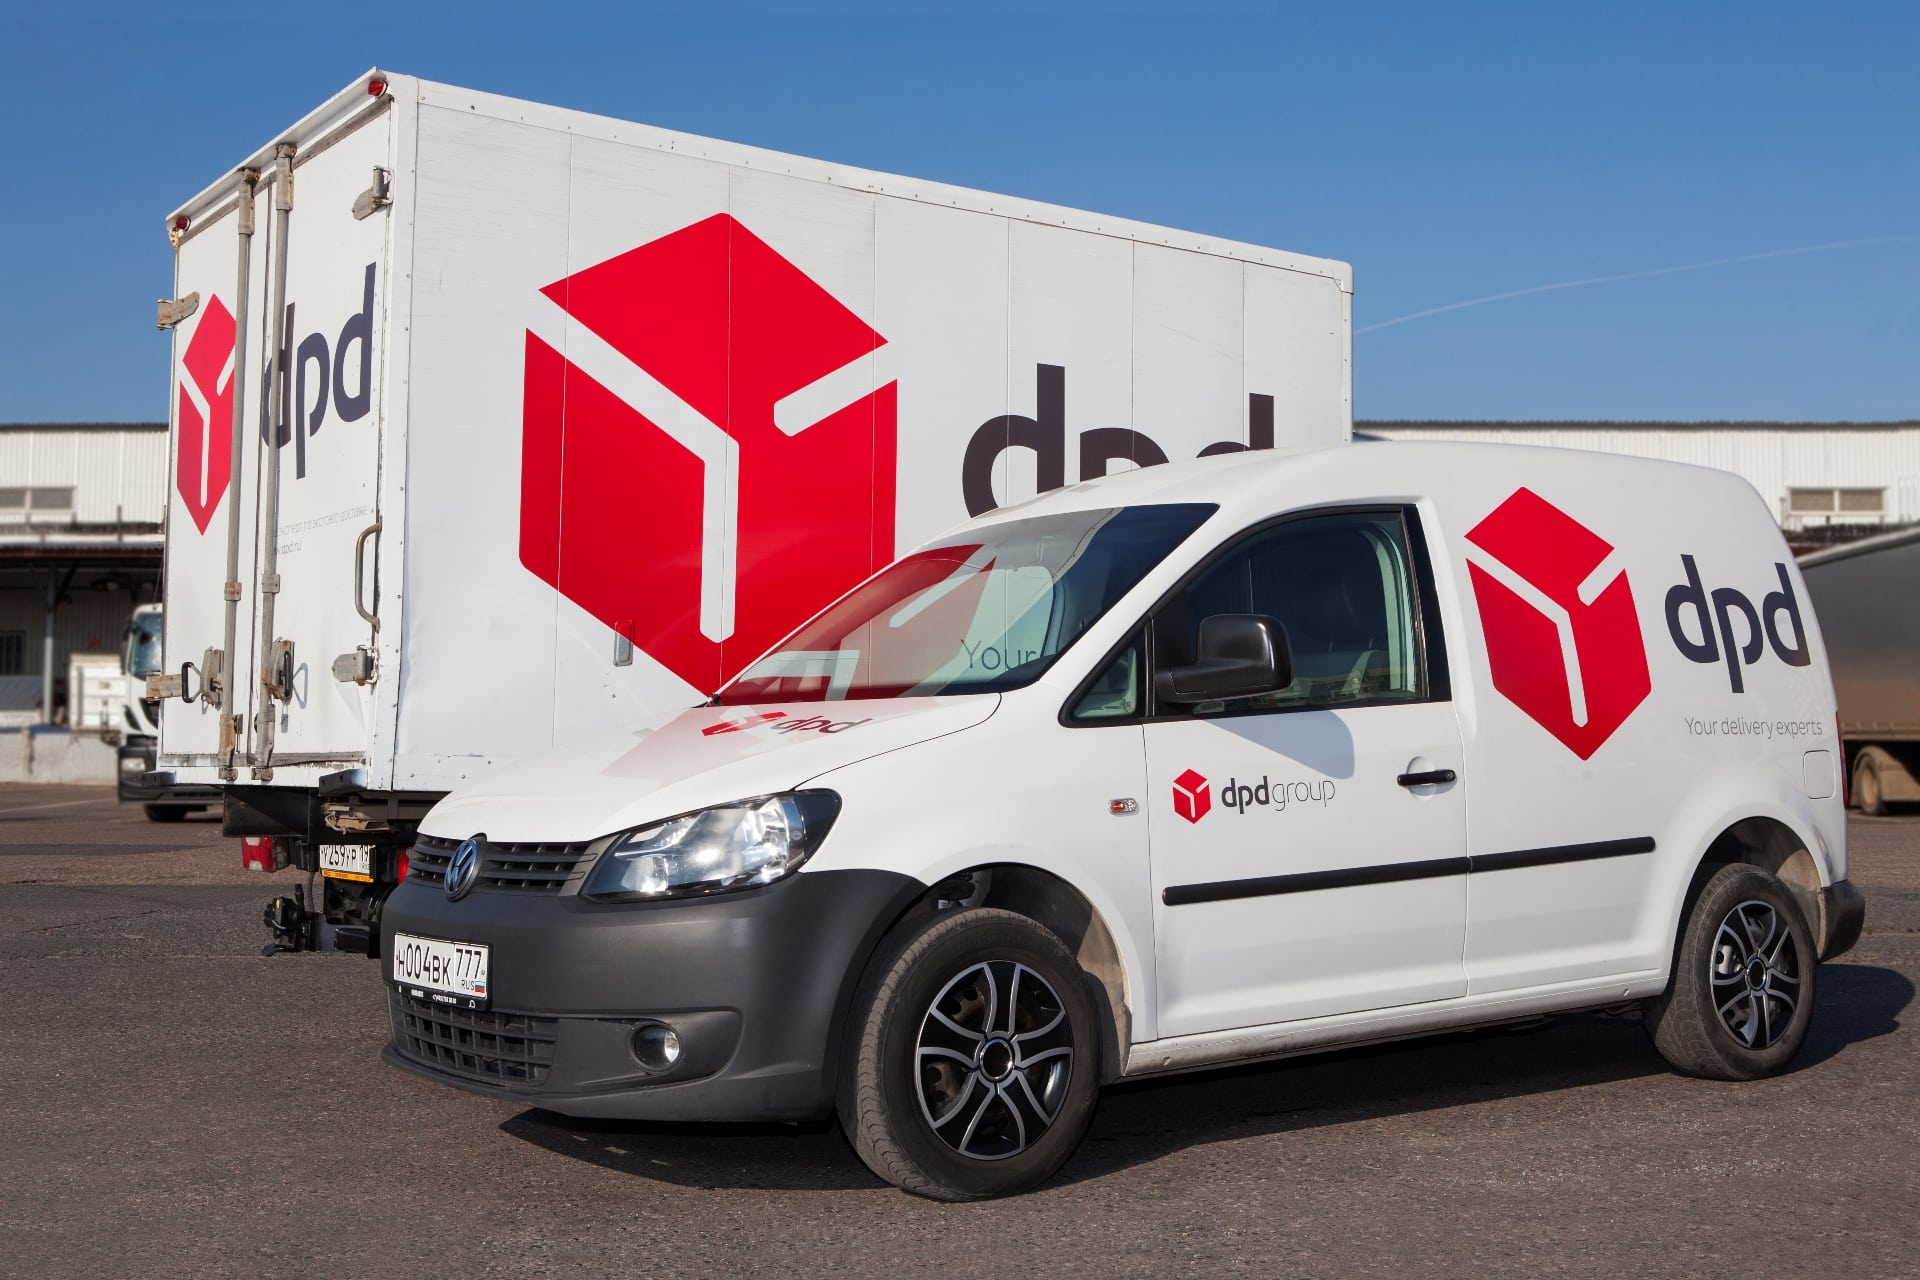 dpd delivery cars